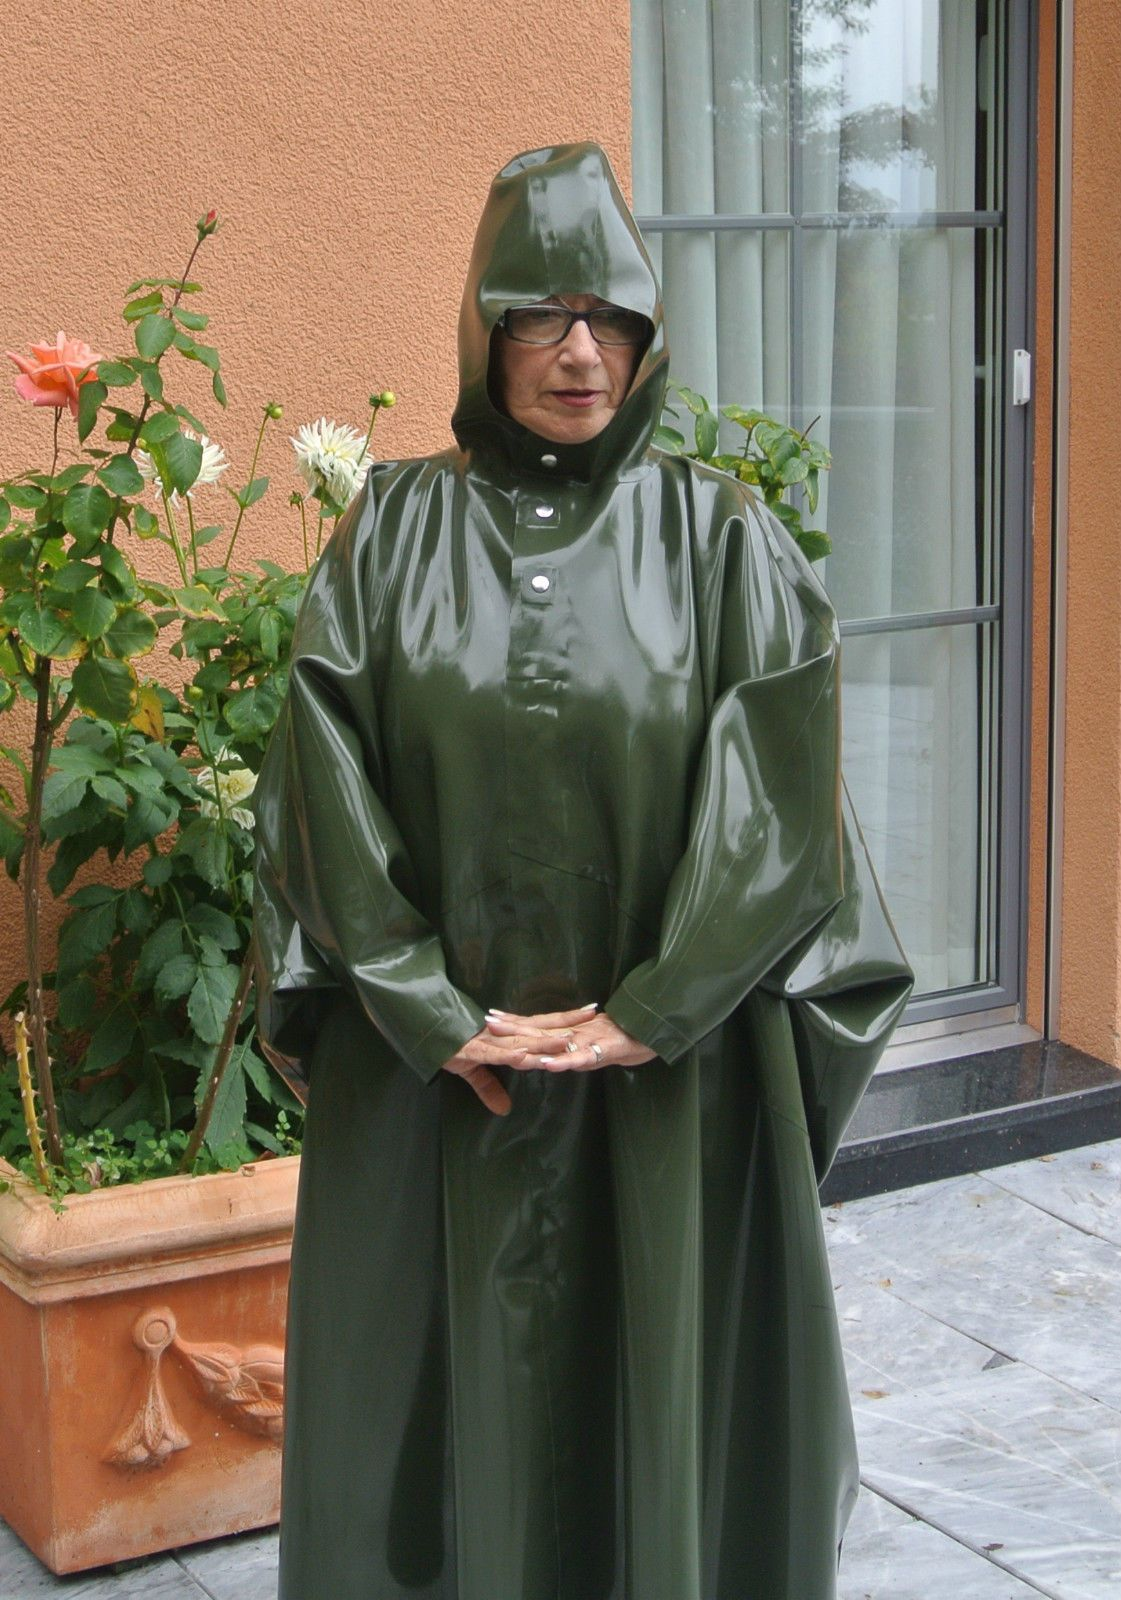 Regenponcho Damen Gummi Latex Rubber Regen Poncho Articles Latex Très Utiles